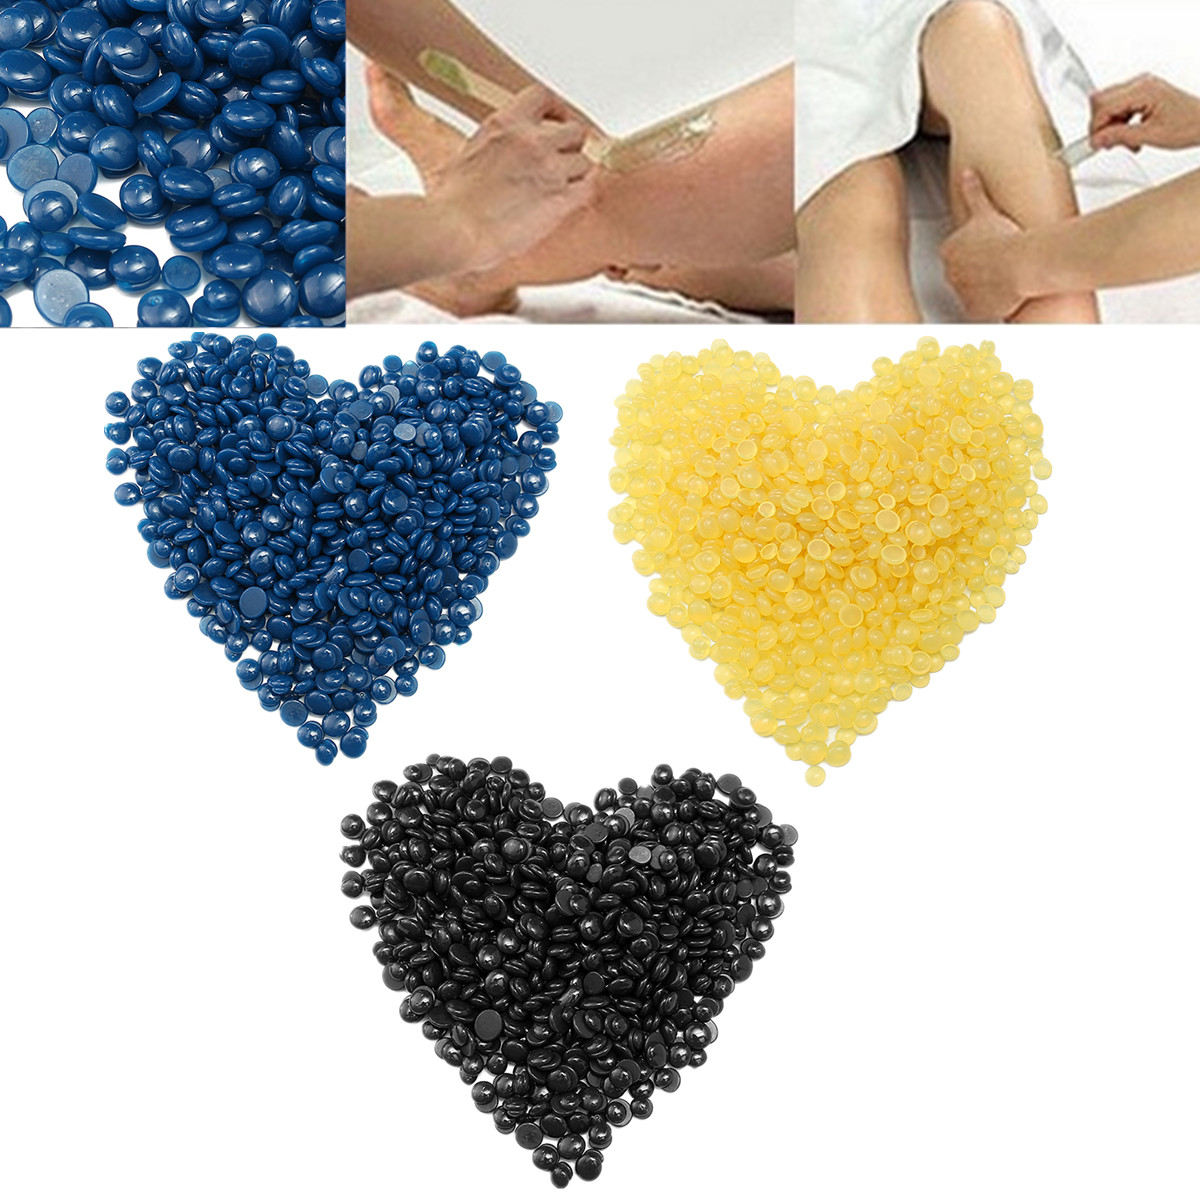 100g Depilatory Hot Film Heat Hard Wax Waxing Beans Pellet Body Hair Removal Four Flavors